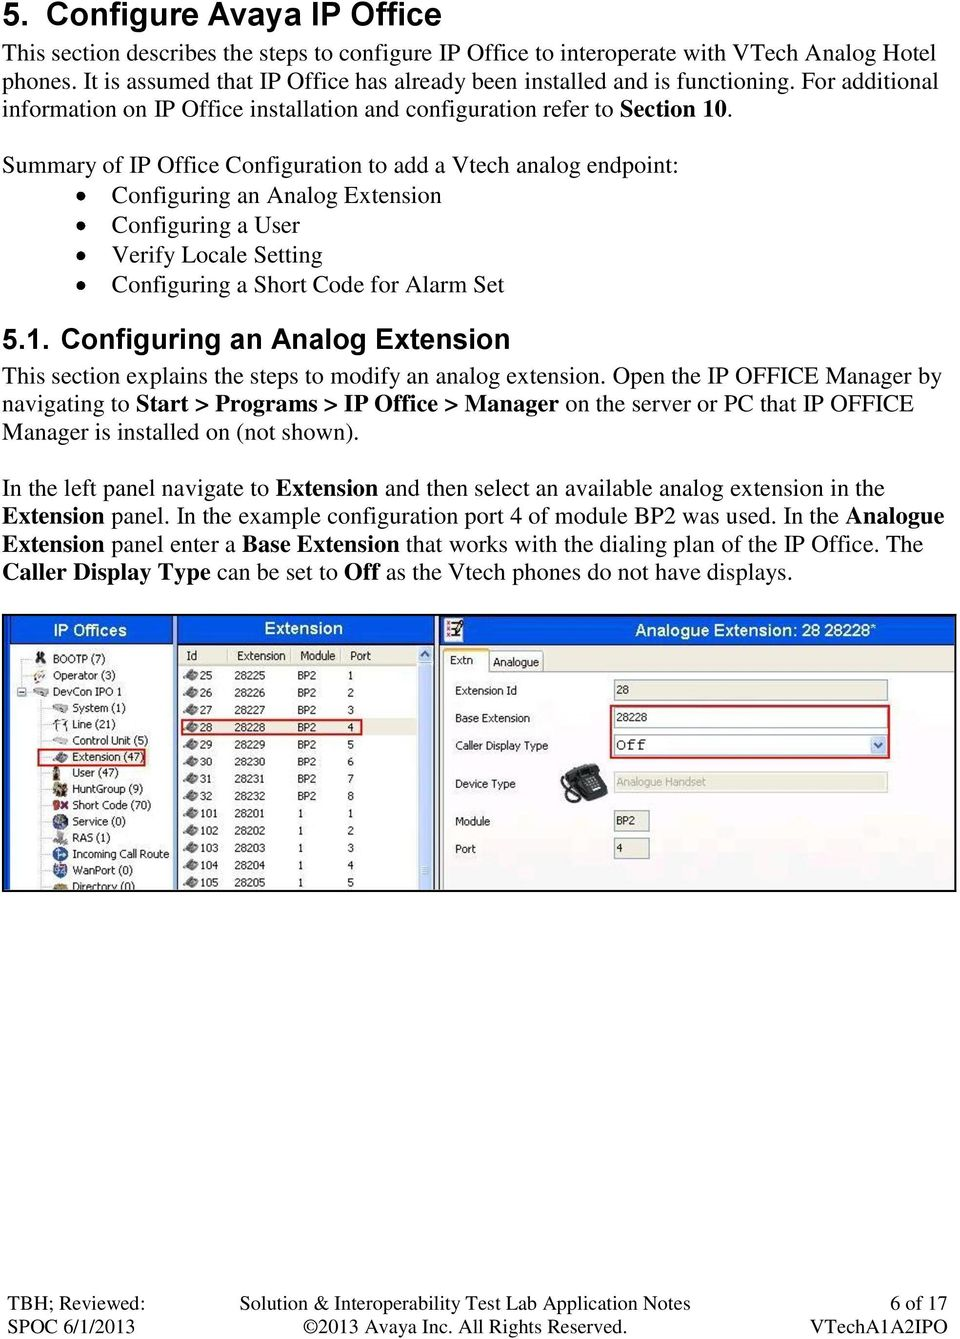 Application Notes for VTech 1-Line and 2-Line Analog Hotel Phones